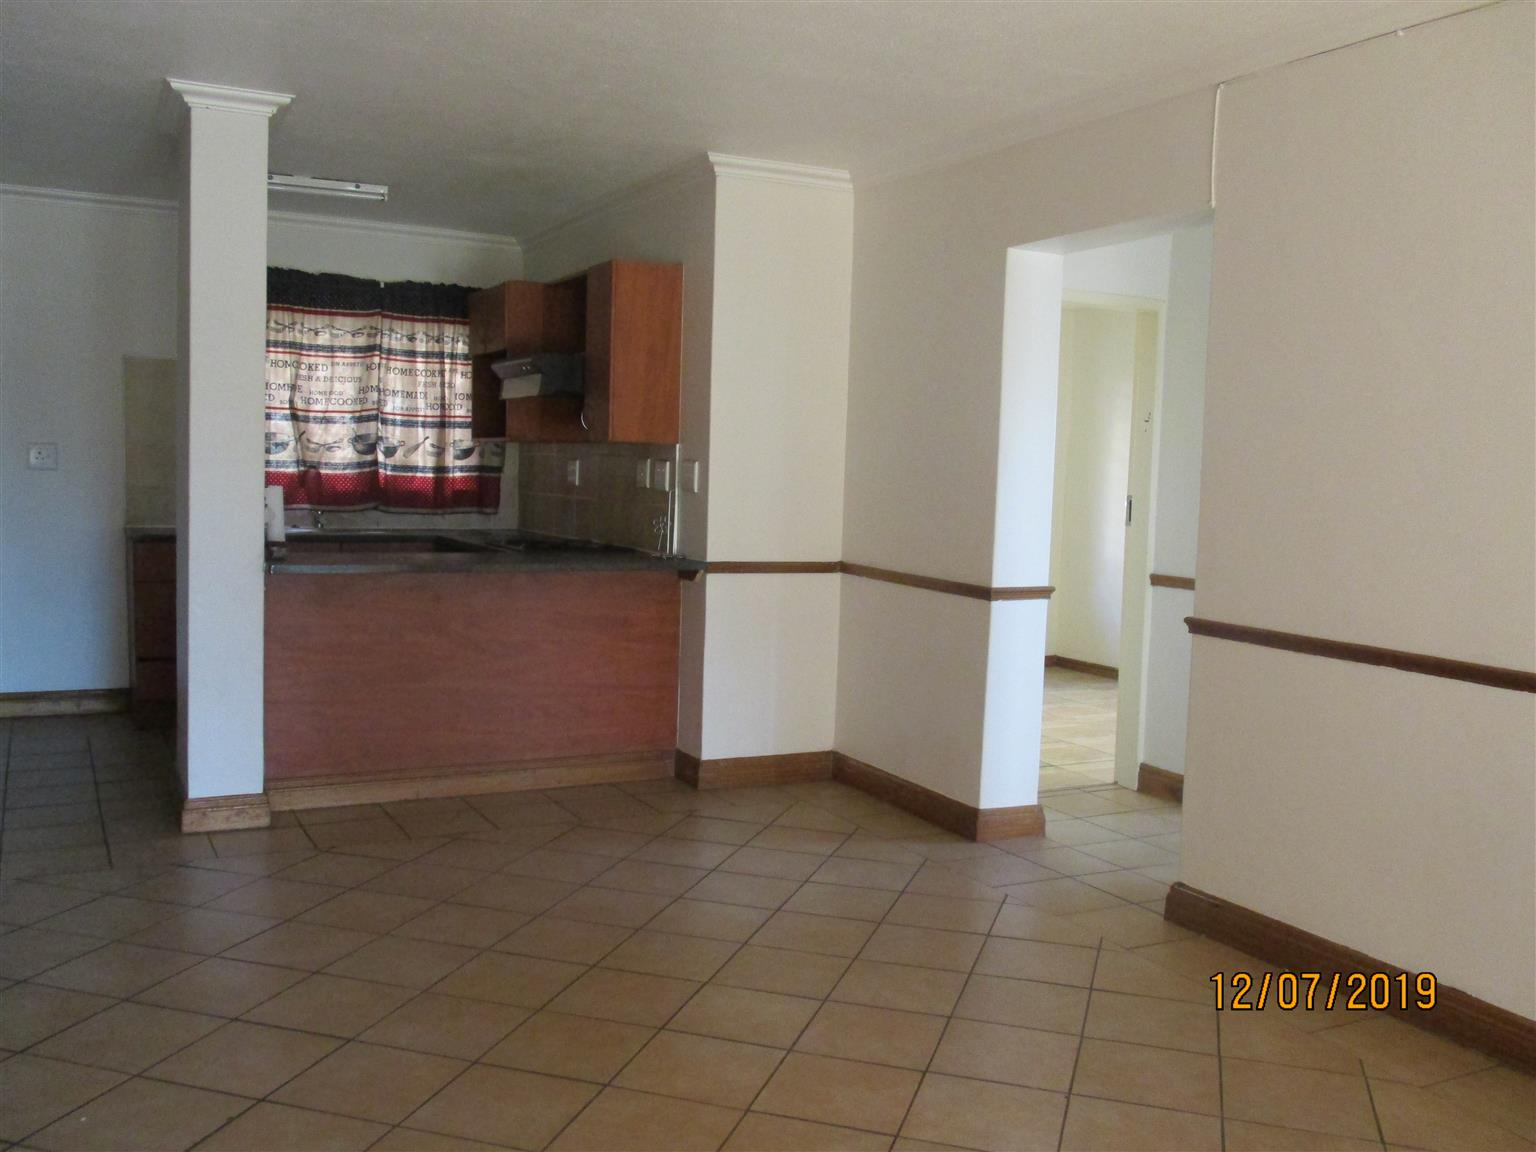 Strange 3 Bedroom 2 Bathroom Apartment To Rent Junk Mail Complete Home Design Collection Barbaintelli Responsecom